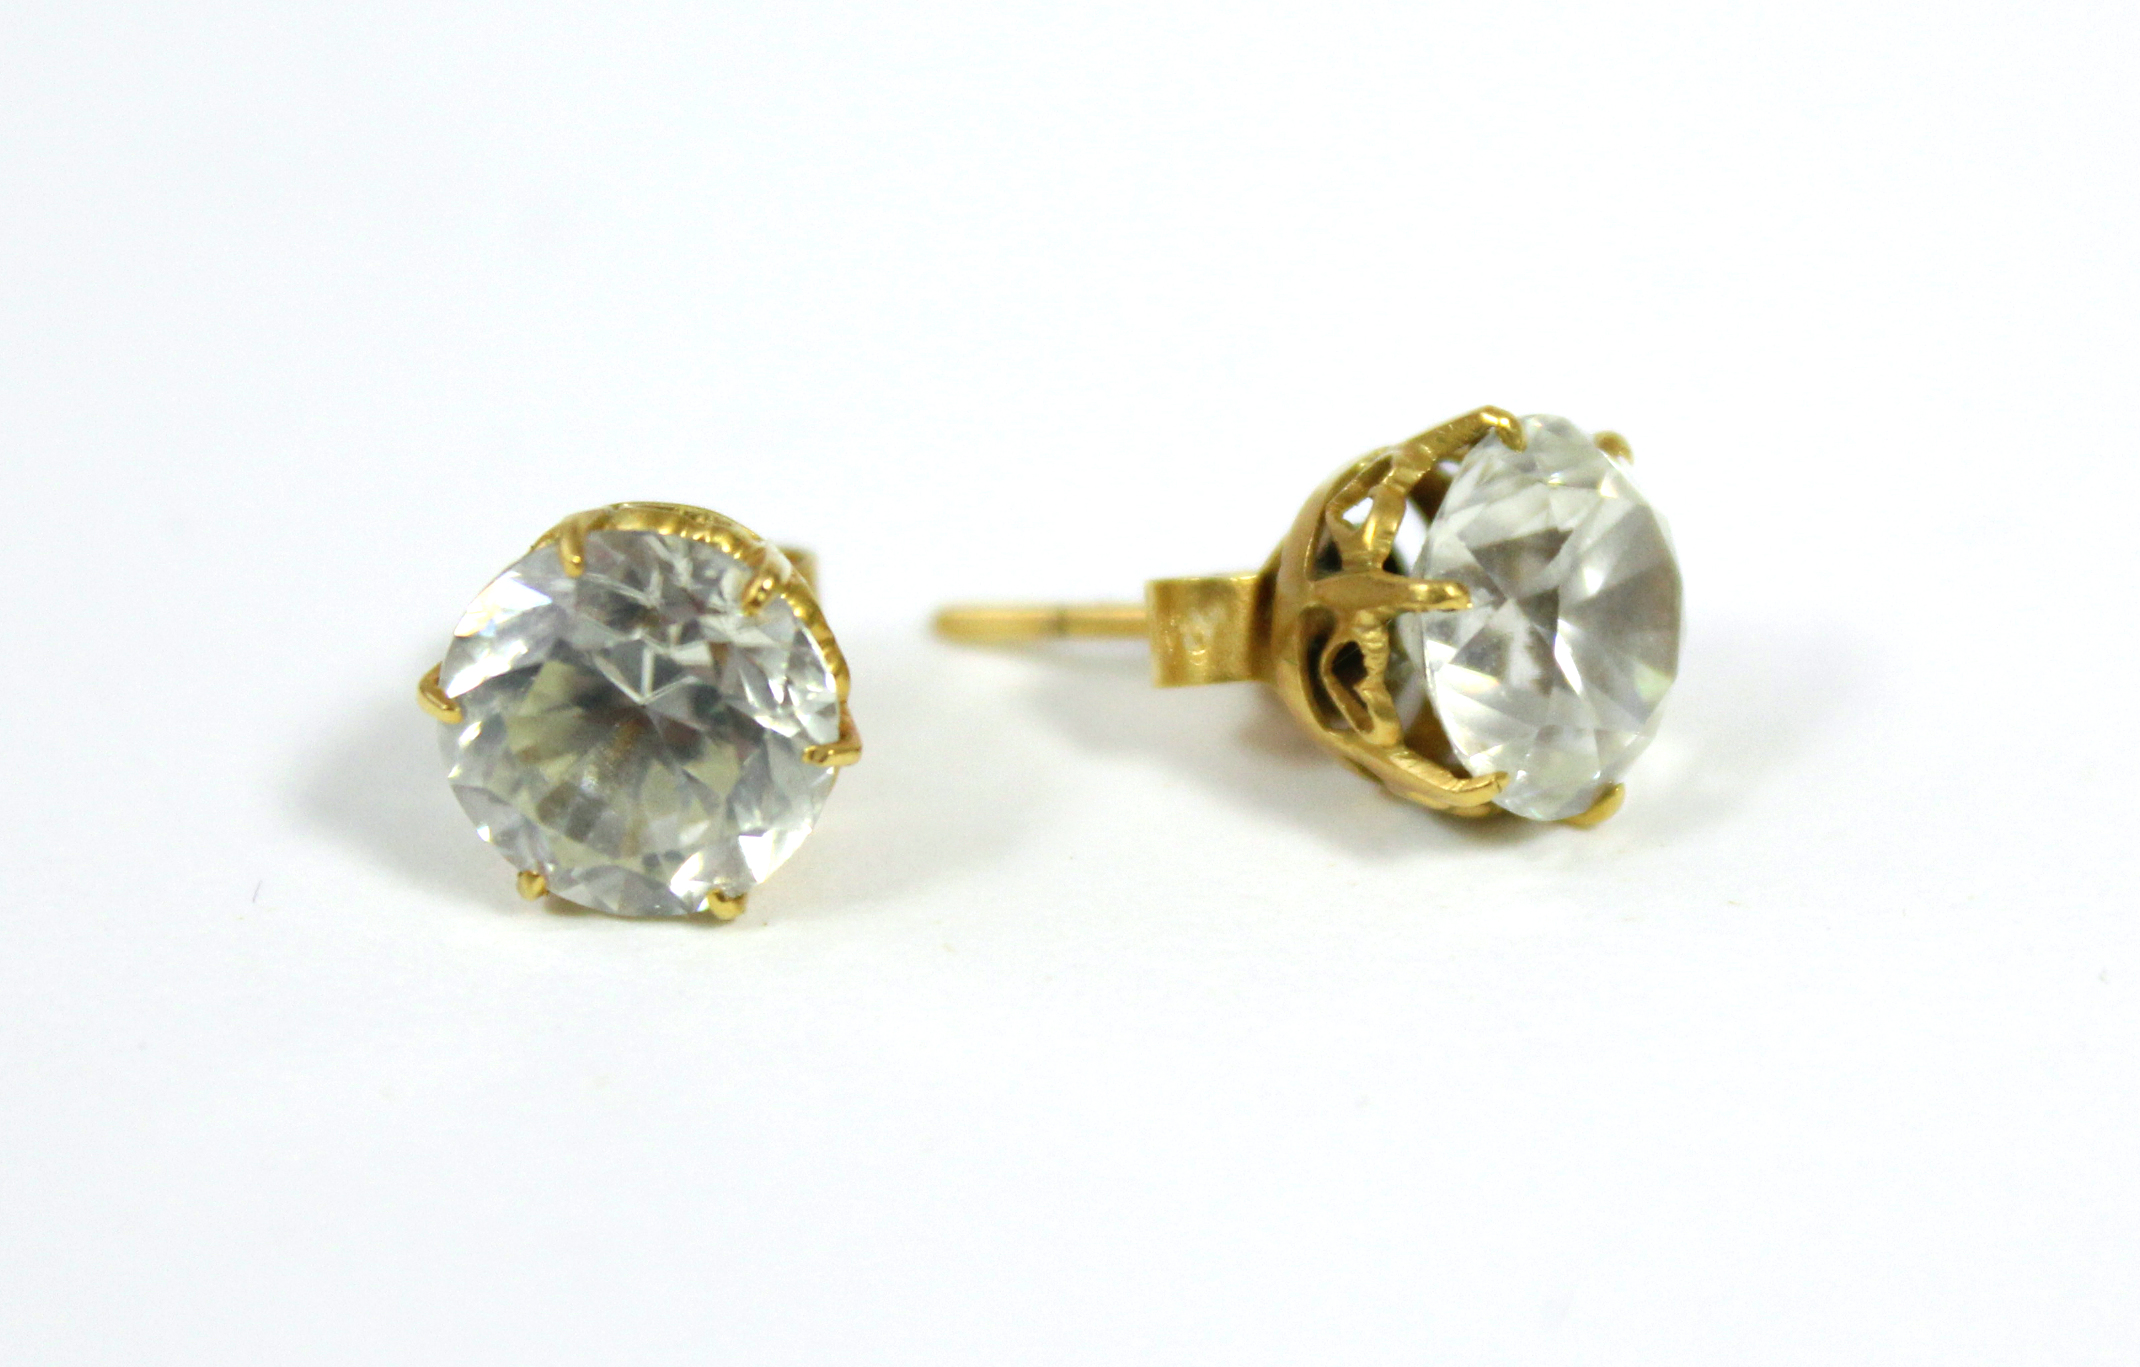 A pair of white topaz ear studs.